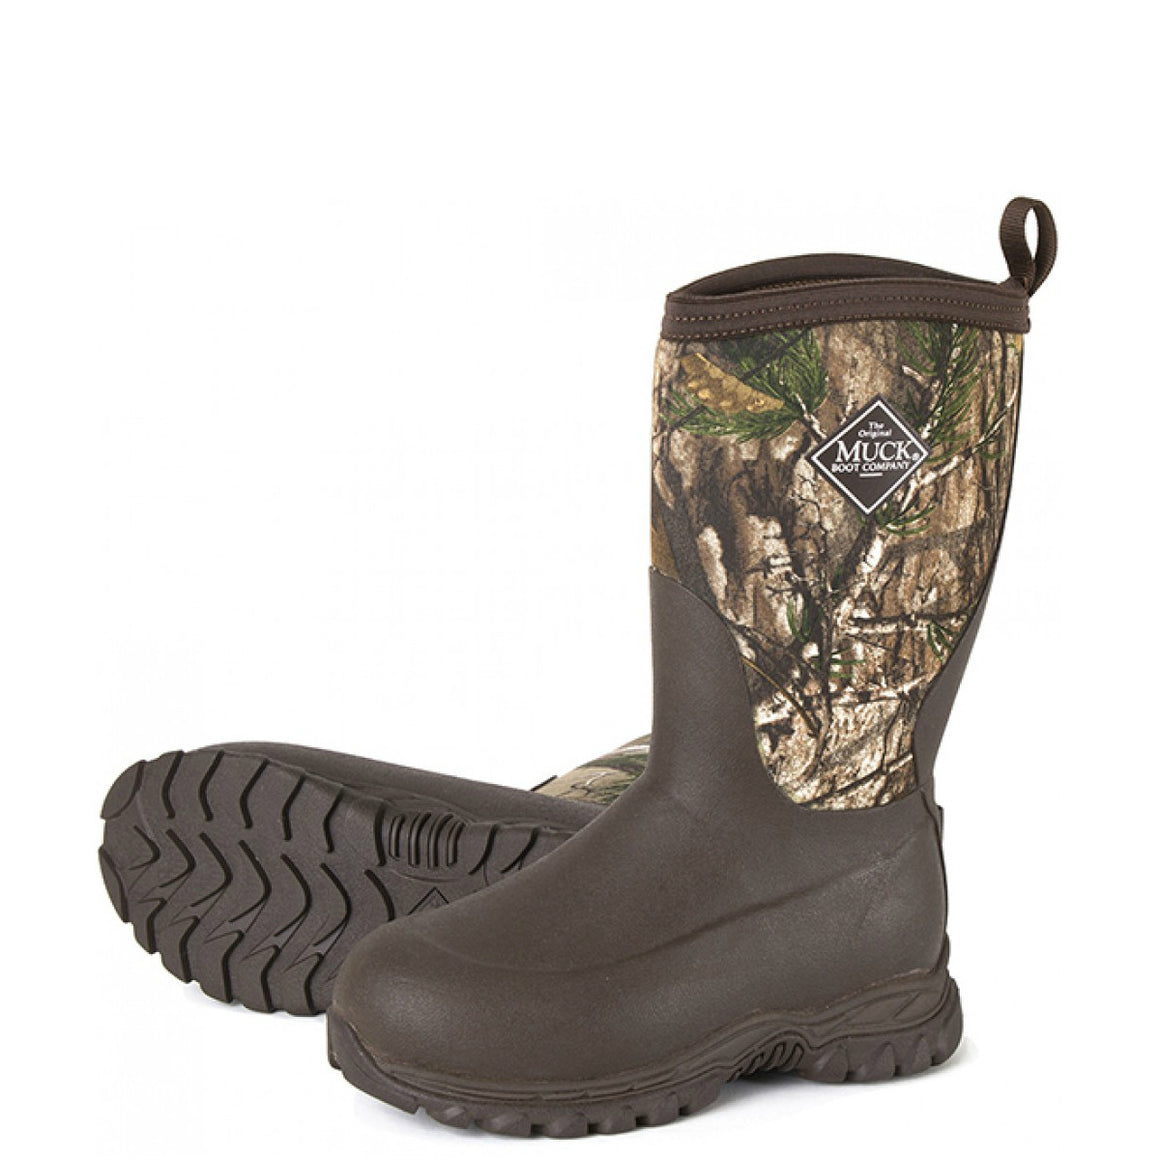 Muck Boot Kid's Rugged II Performance Outdoor Sport Boot - Brown/Realtree Xtra RG2-RTX